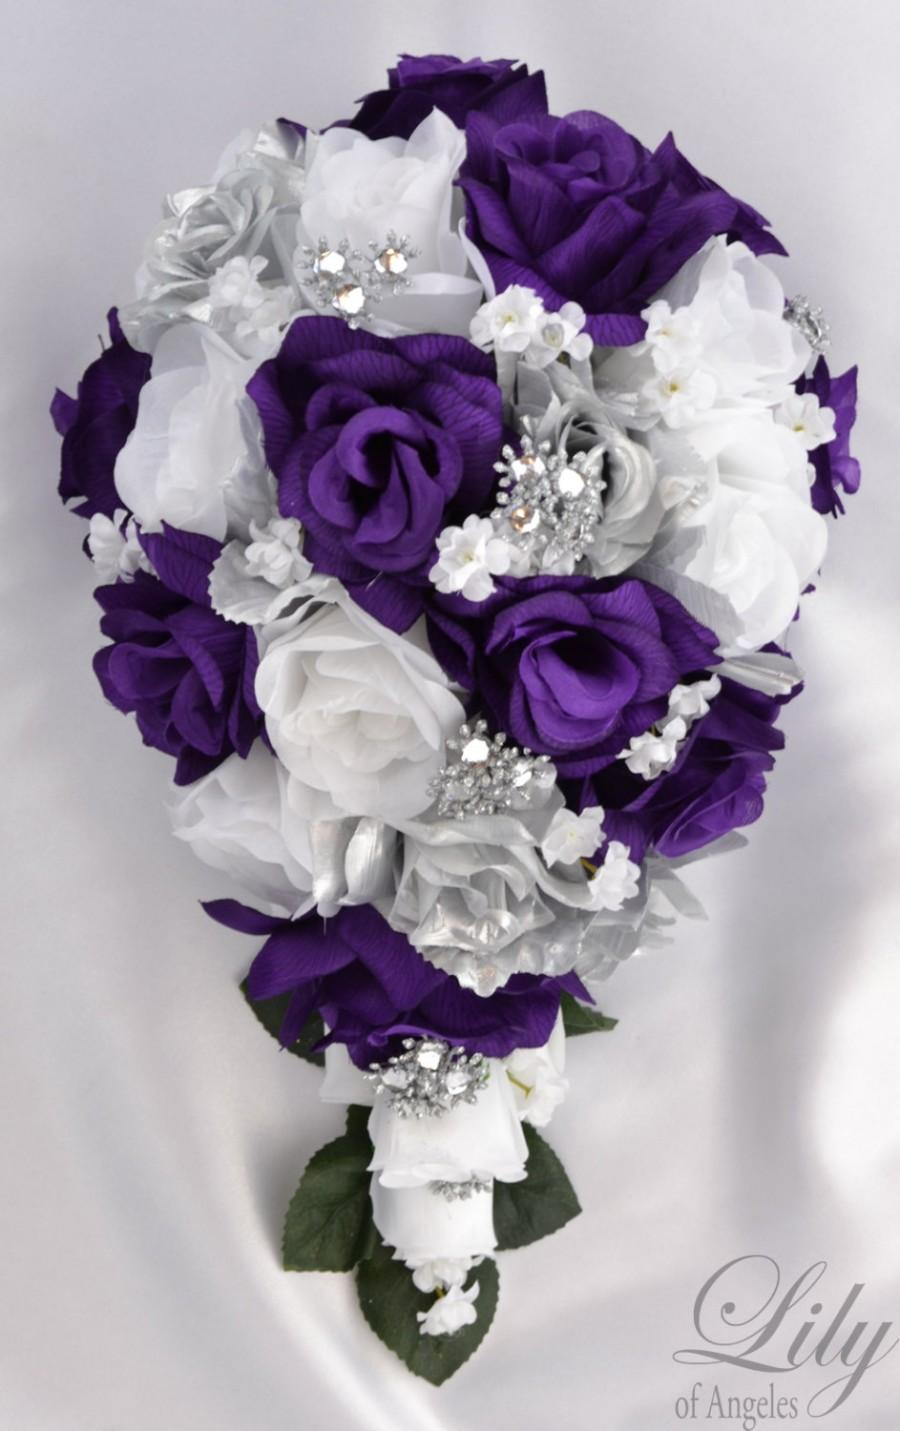 17 piece package bridal bouquet wedding bouquets silk flowers bride 17 piece package bridal bouquet wedding bouquets silk flowers bride cascade teardrop purple silver white jewels lily of angeles pusi01 junglespirit Image collections